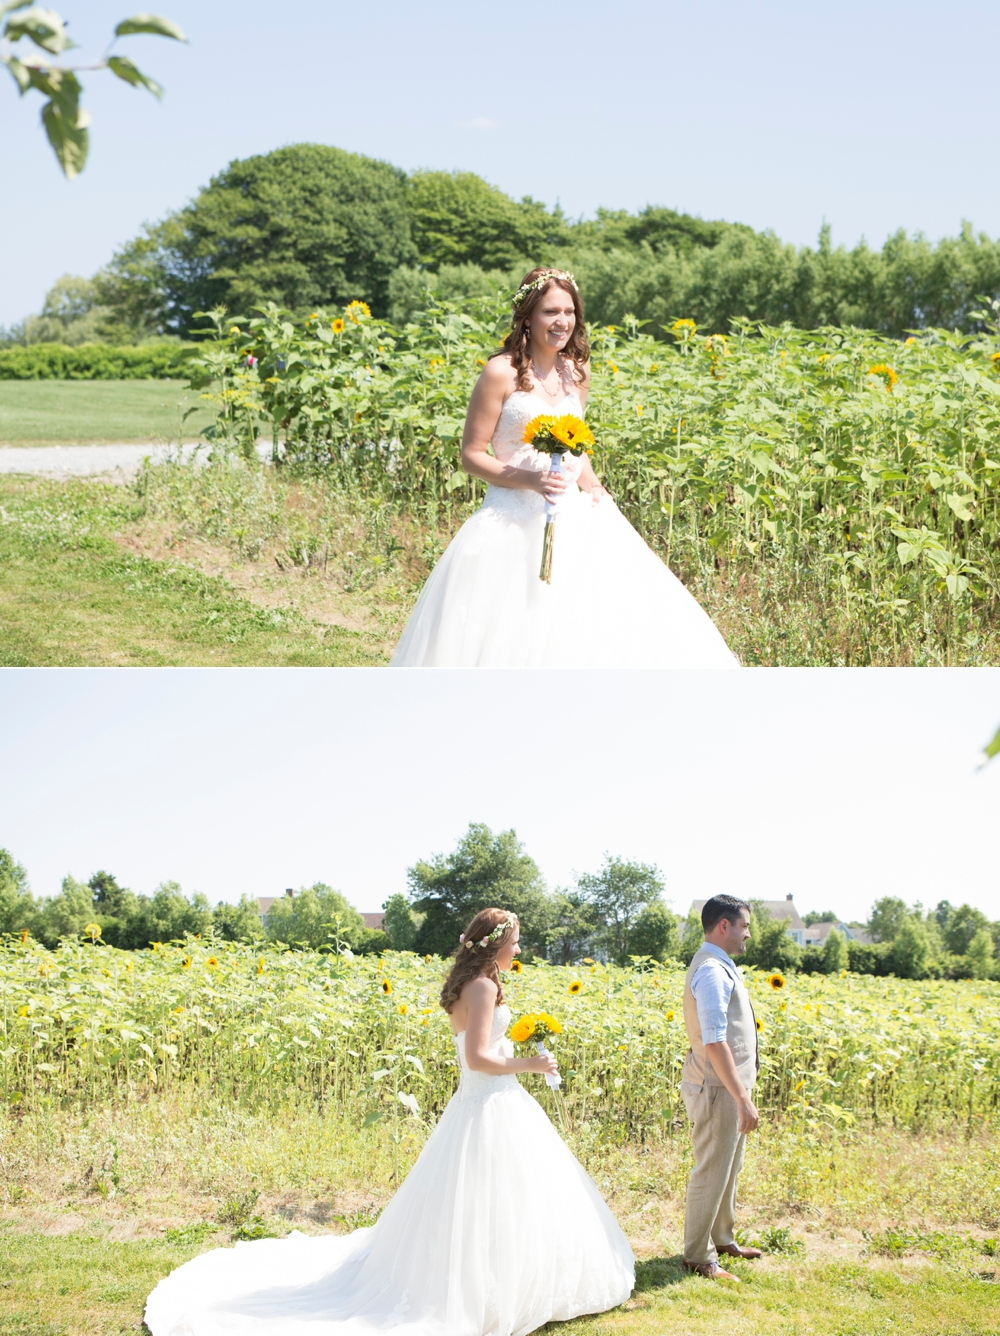 GreenvaleVineyards_Wedding_Missy&Joe_0008.jpg